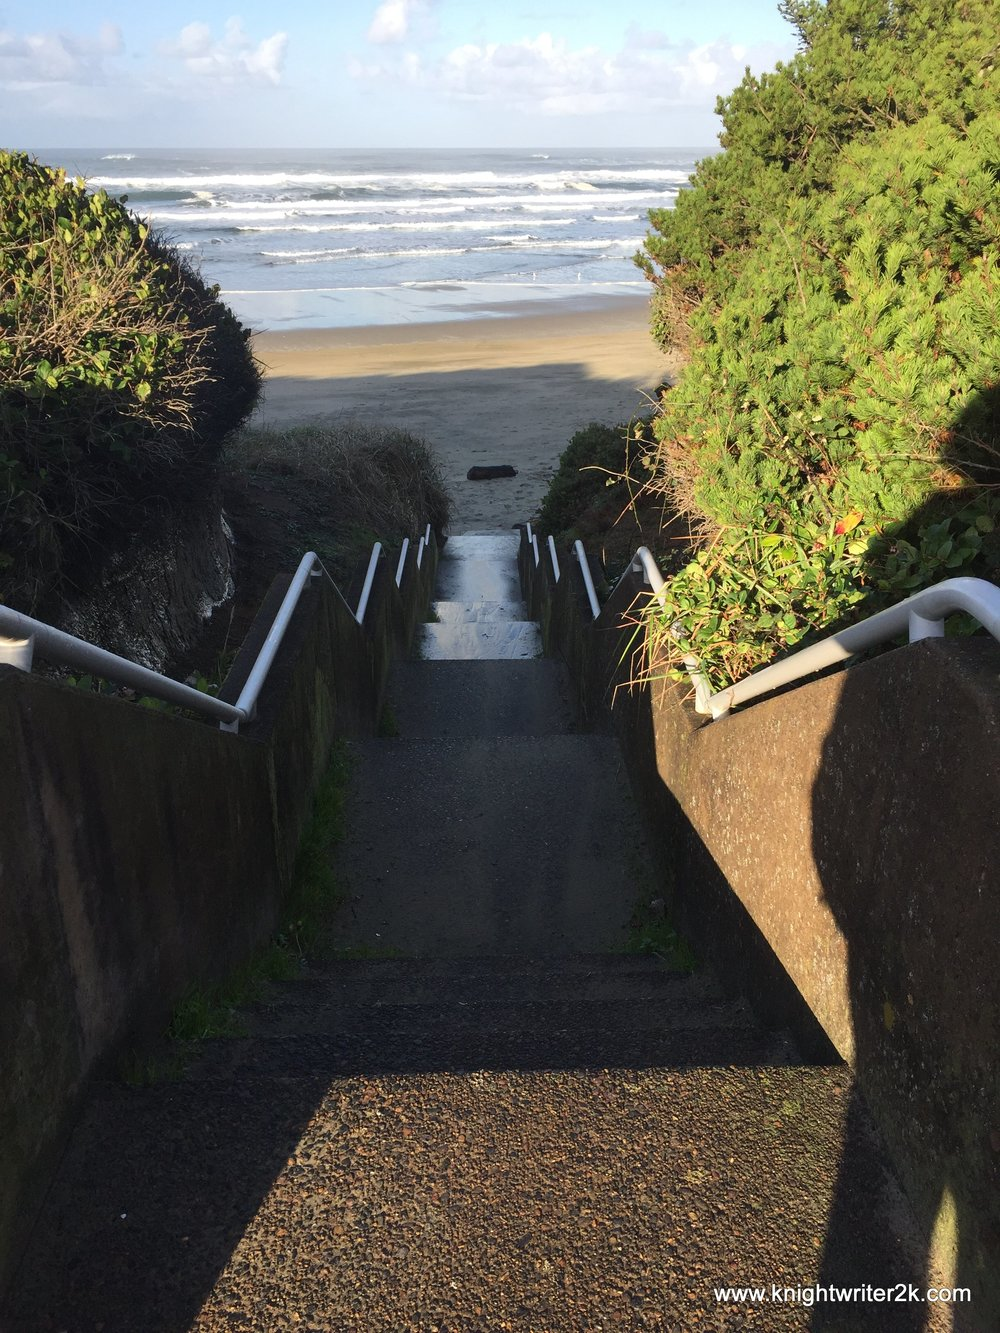 Stairway to the beach, Oregon coast.